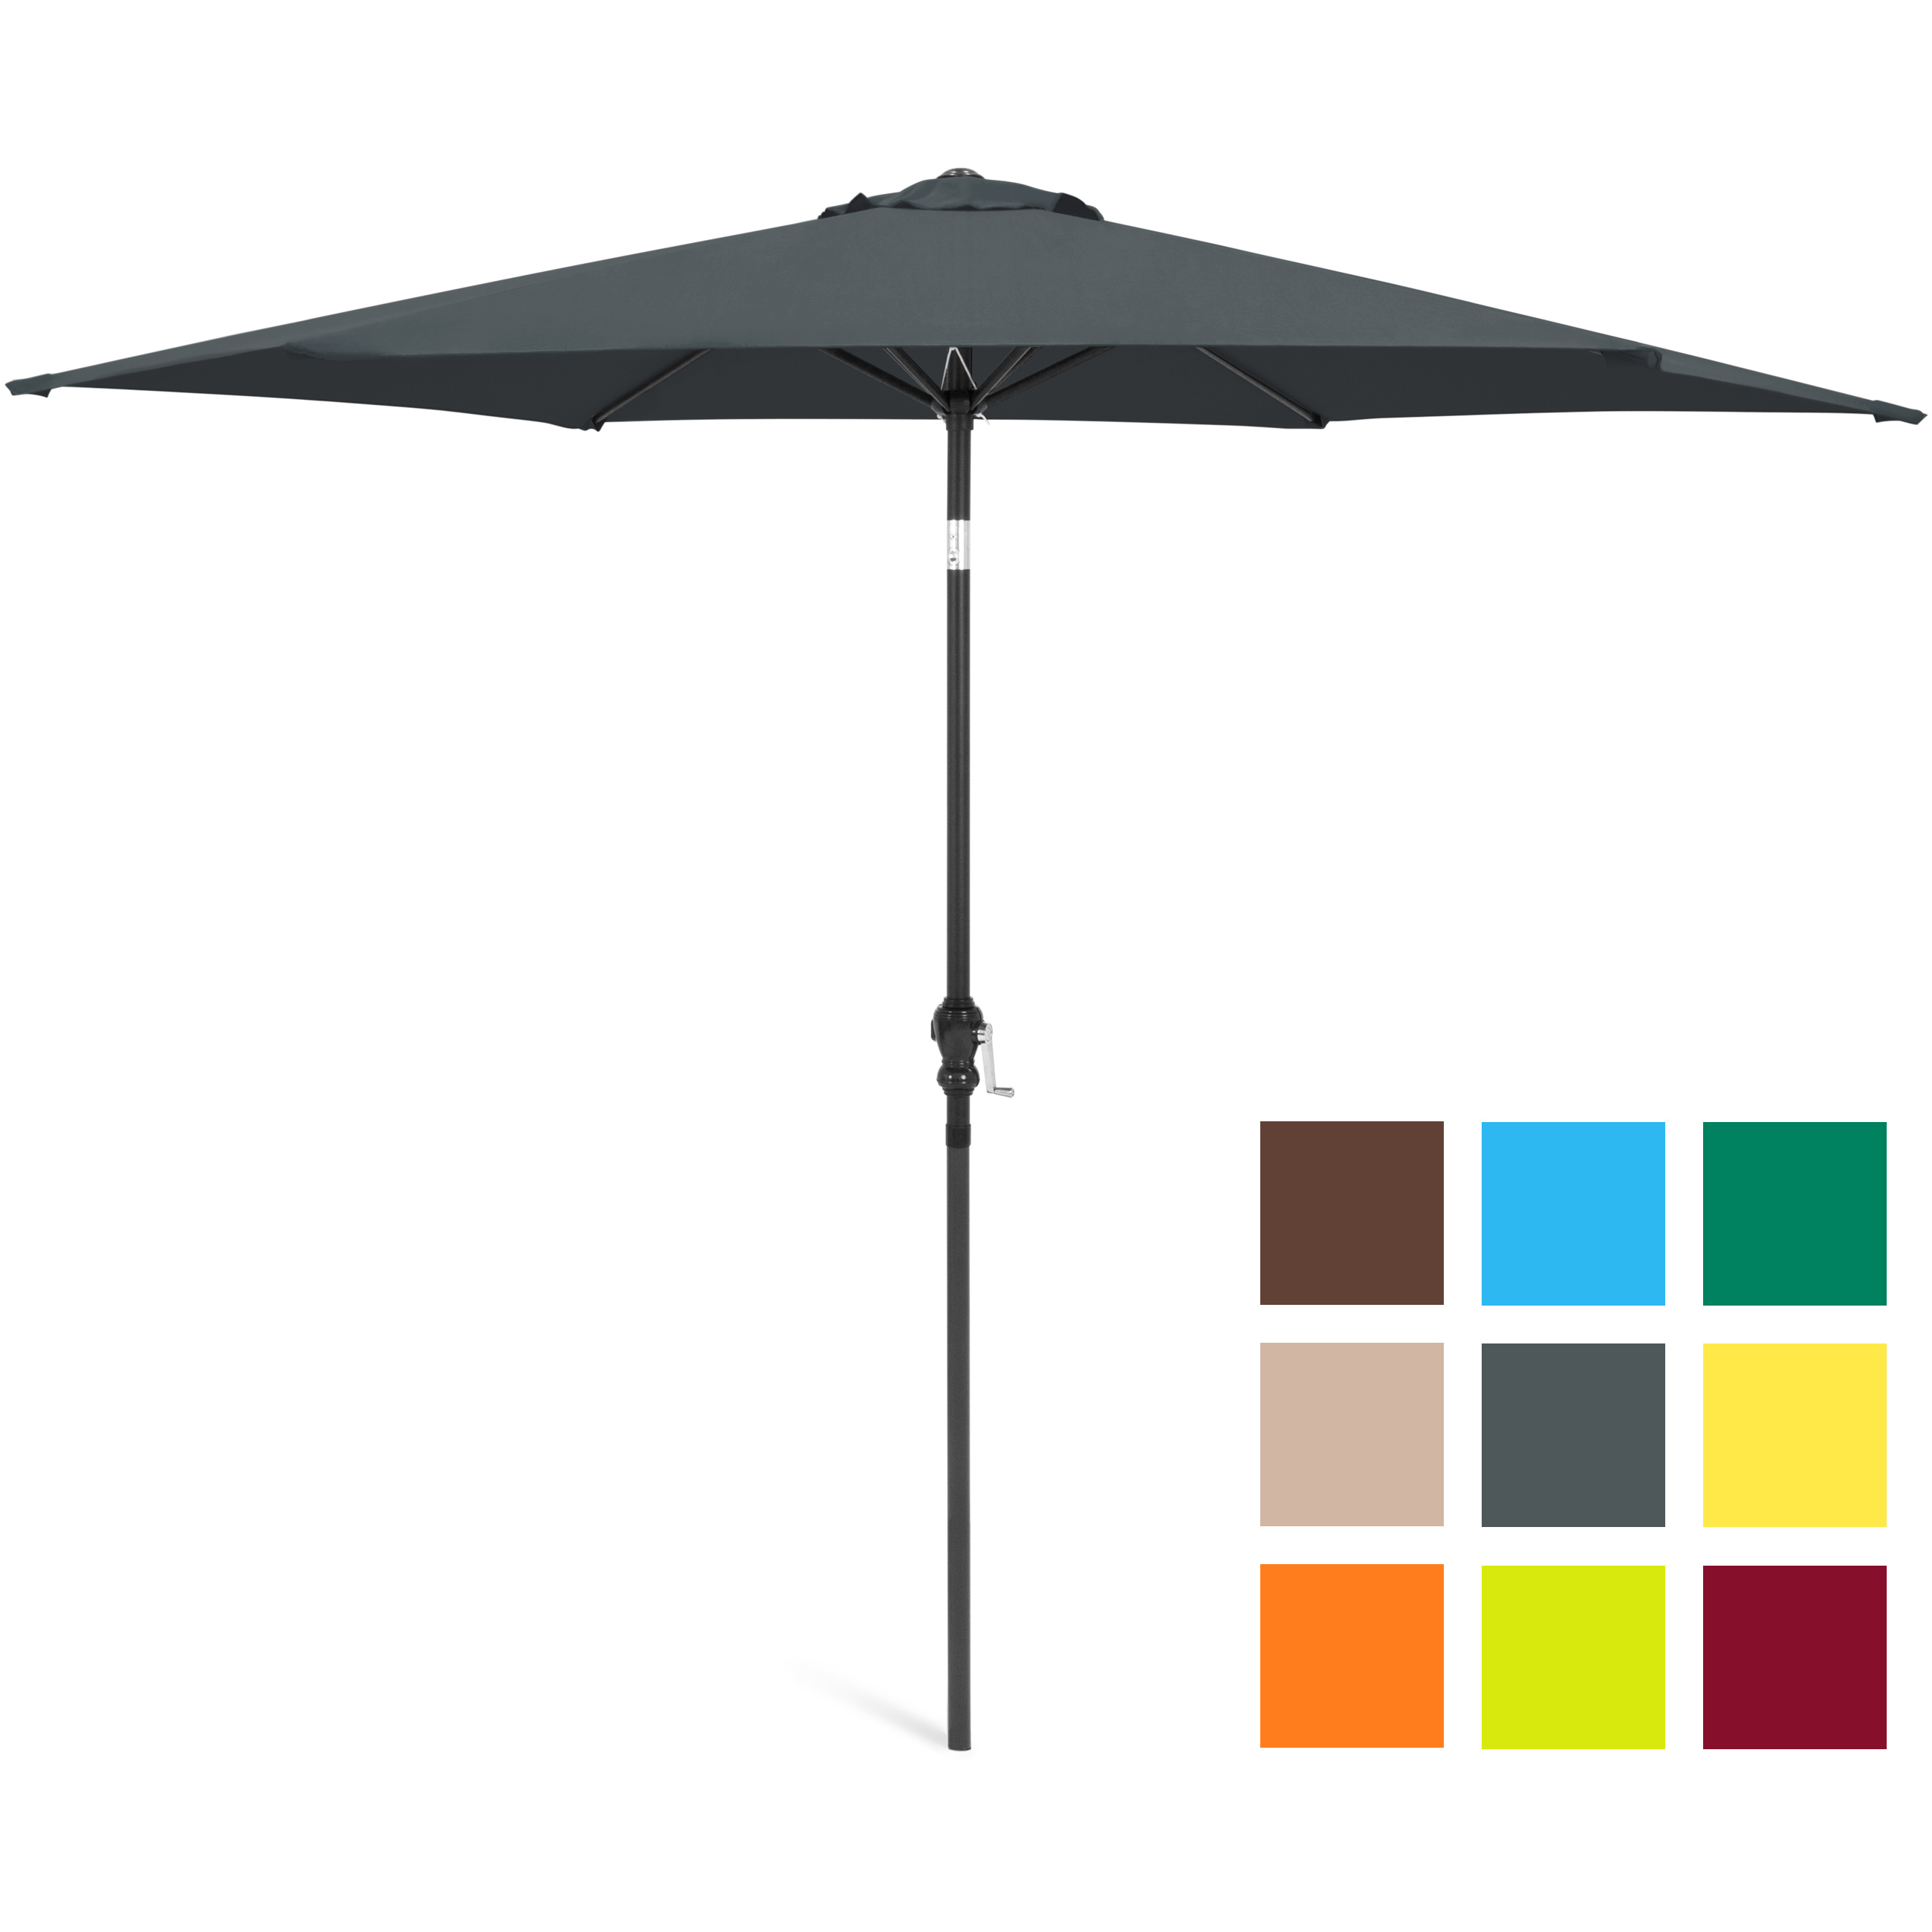 10FT Steel Market Outdoor Patio Umbrella Crank, Tilt Push Button Multiple Colors by Best Choice Products